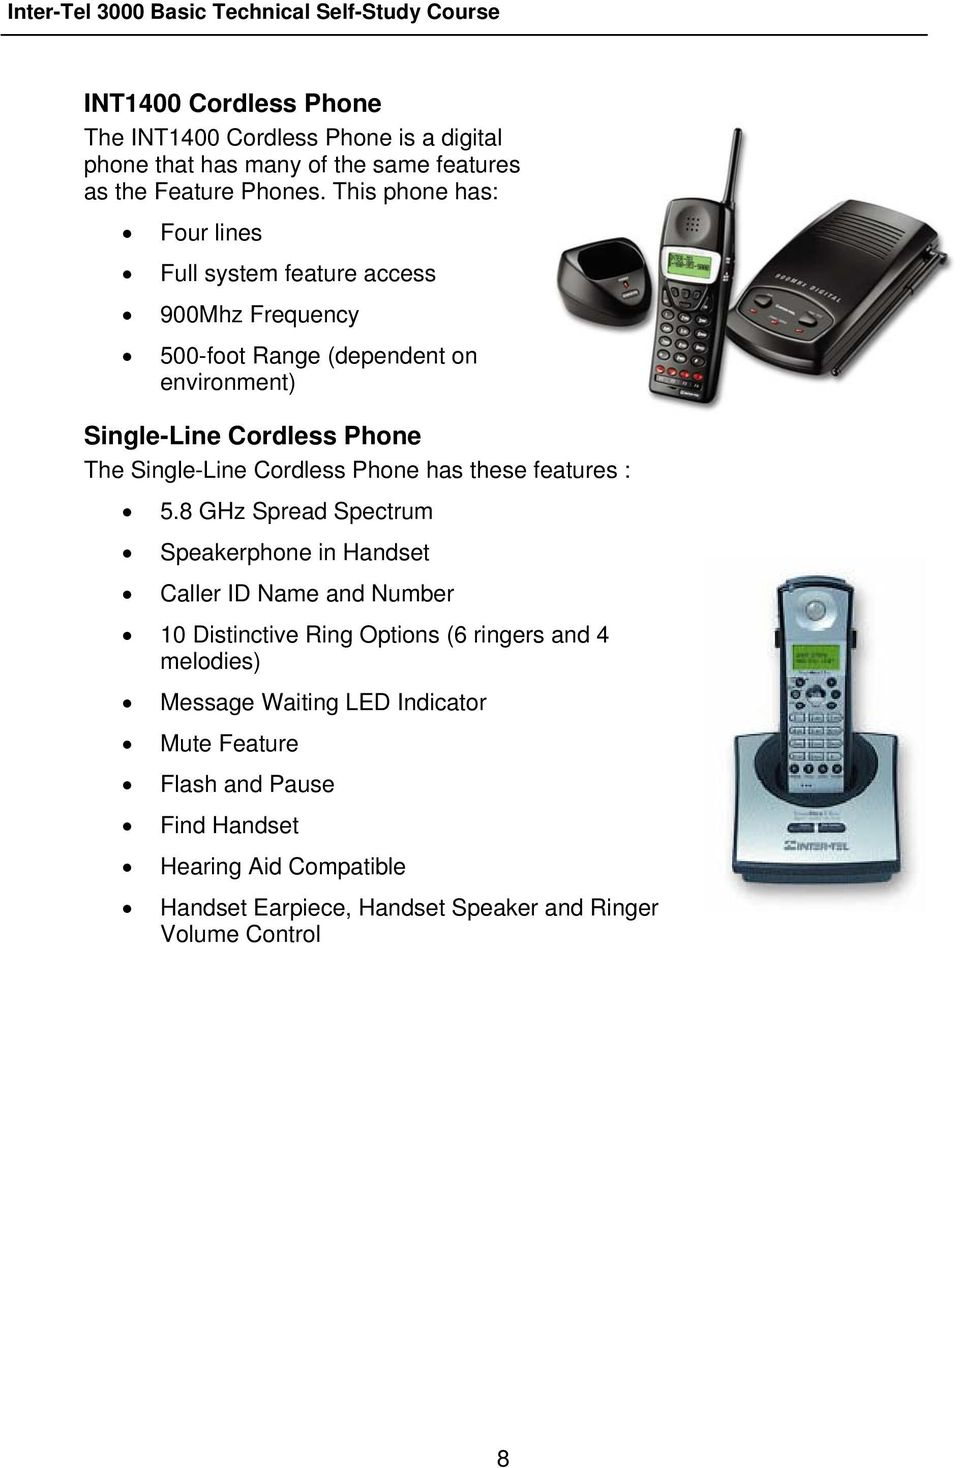 Single-Line Cordless Phone has these features : 5.